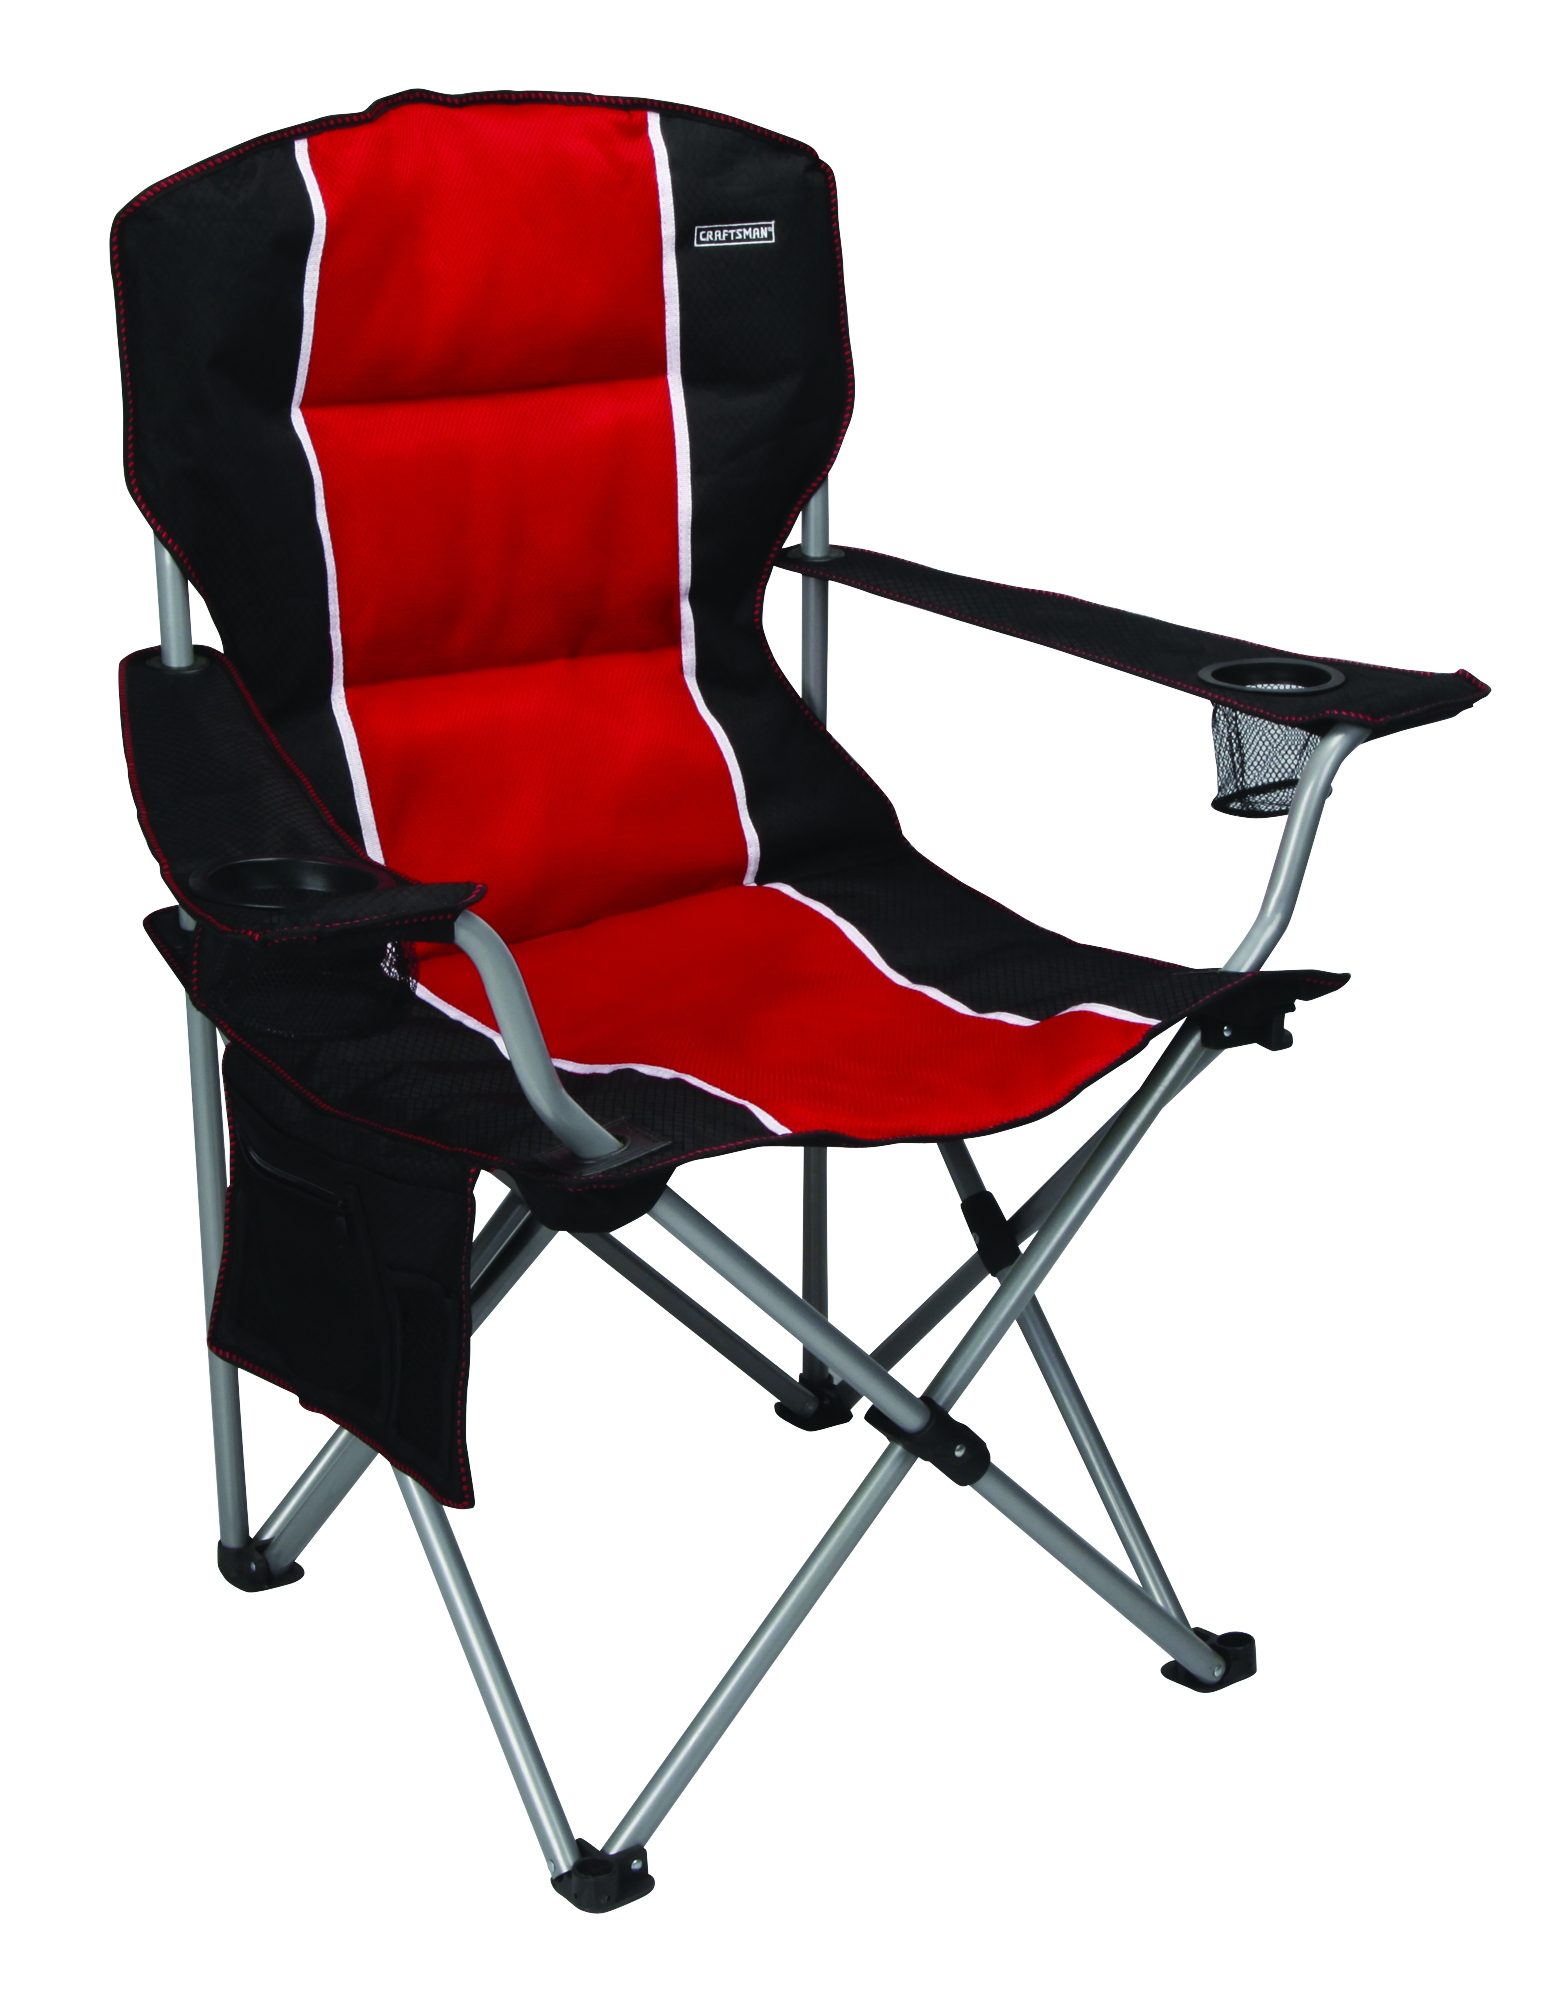 Camper Chairs Craftsman Padded Chair Red Awsome Folding Outdoor Camping